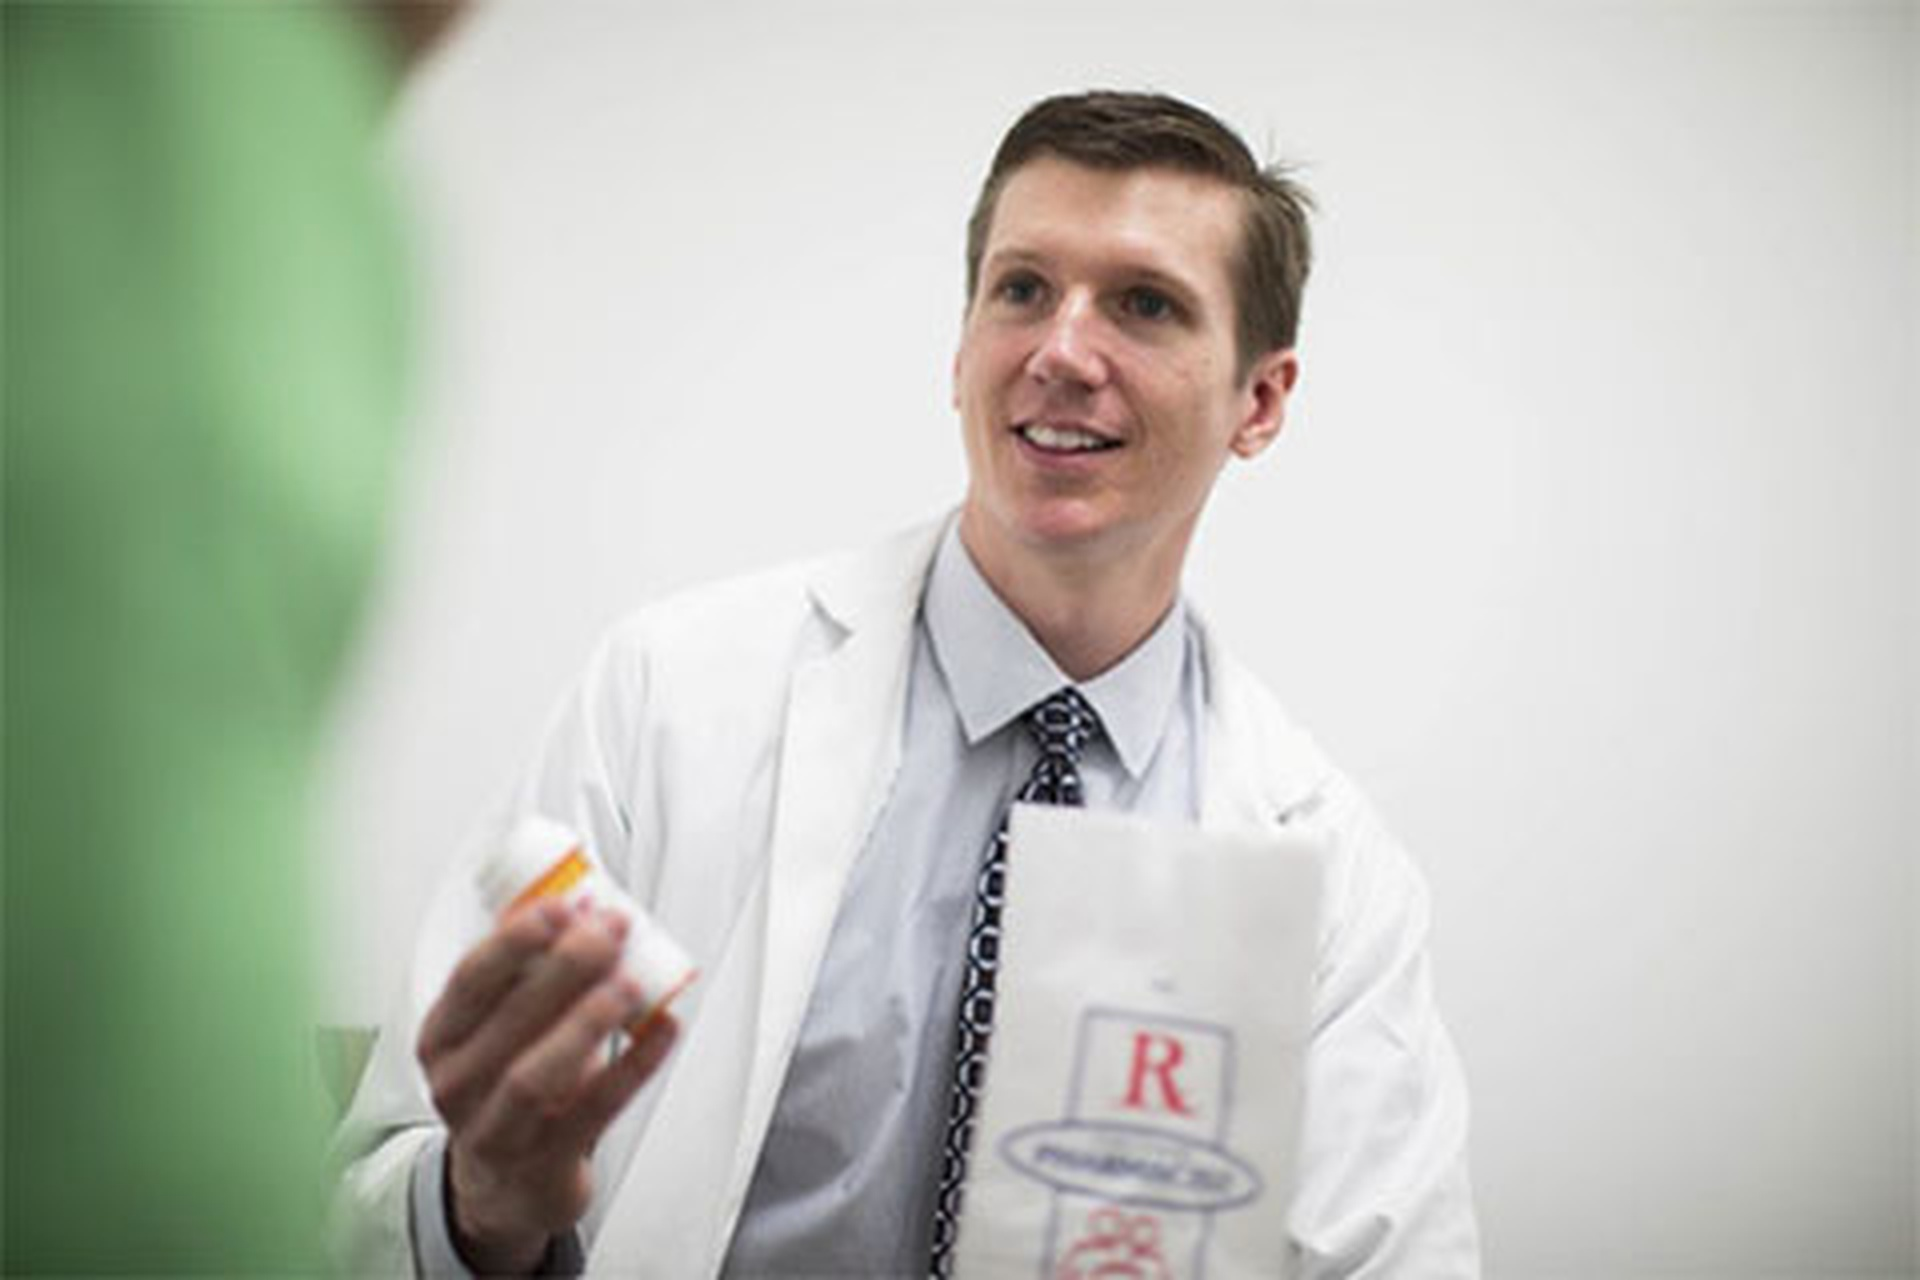 Pharmacist Jesse Wisniewski, PharmD, on the job at Cedars-Sinai. Photo by Cedars-Sinai.